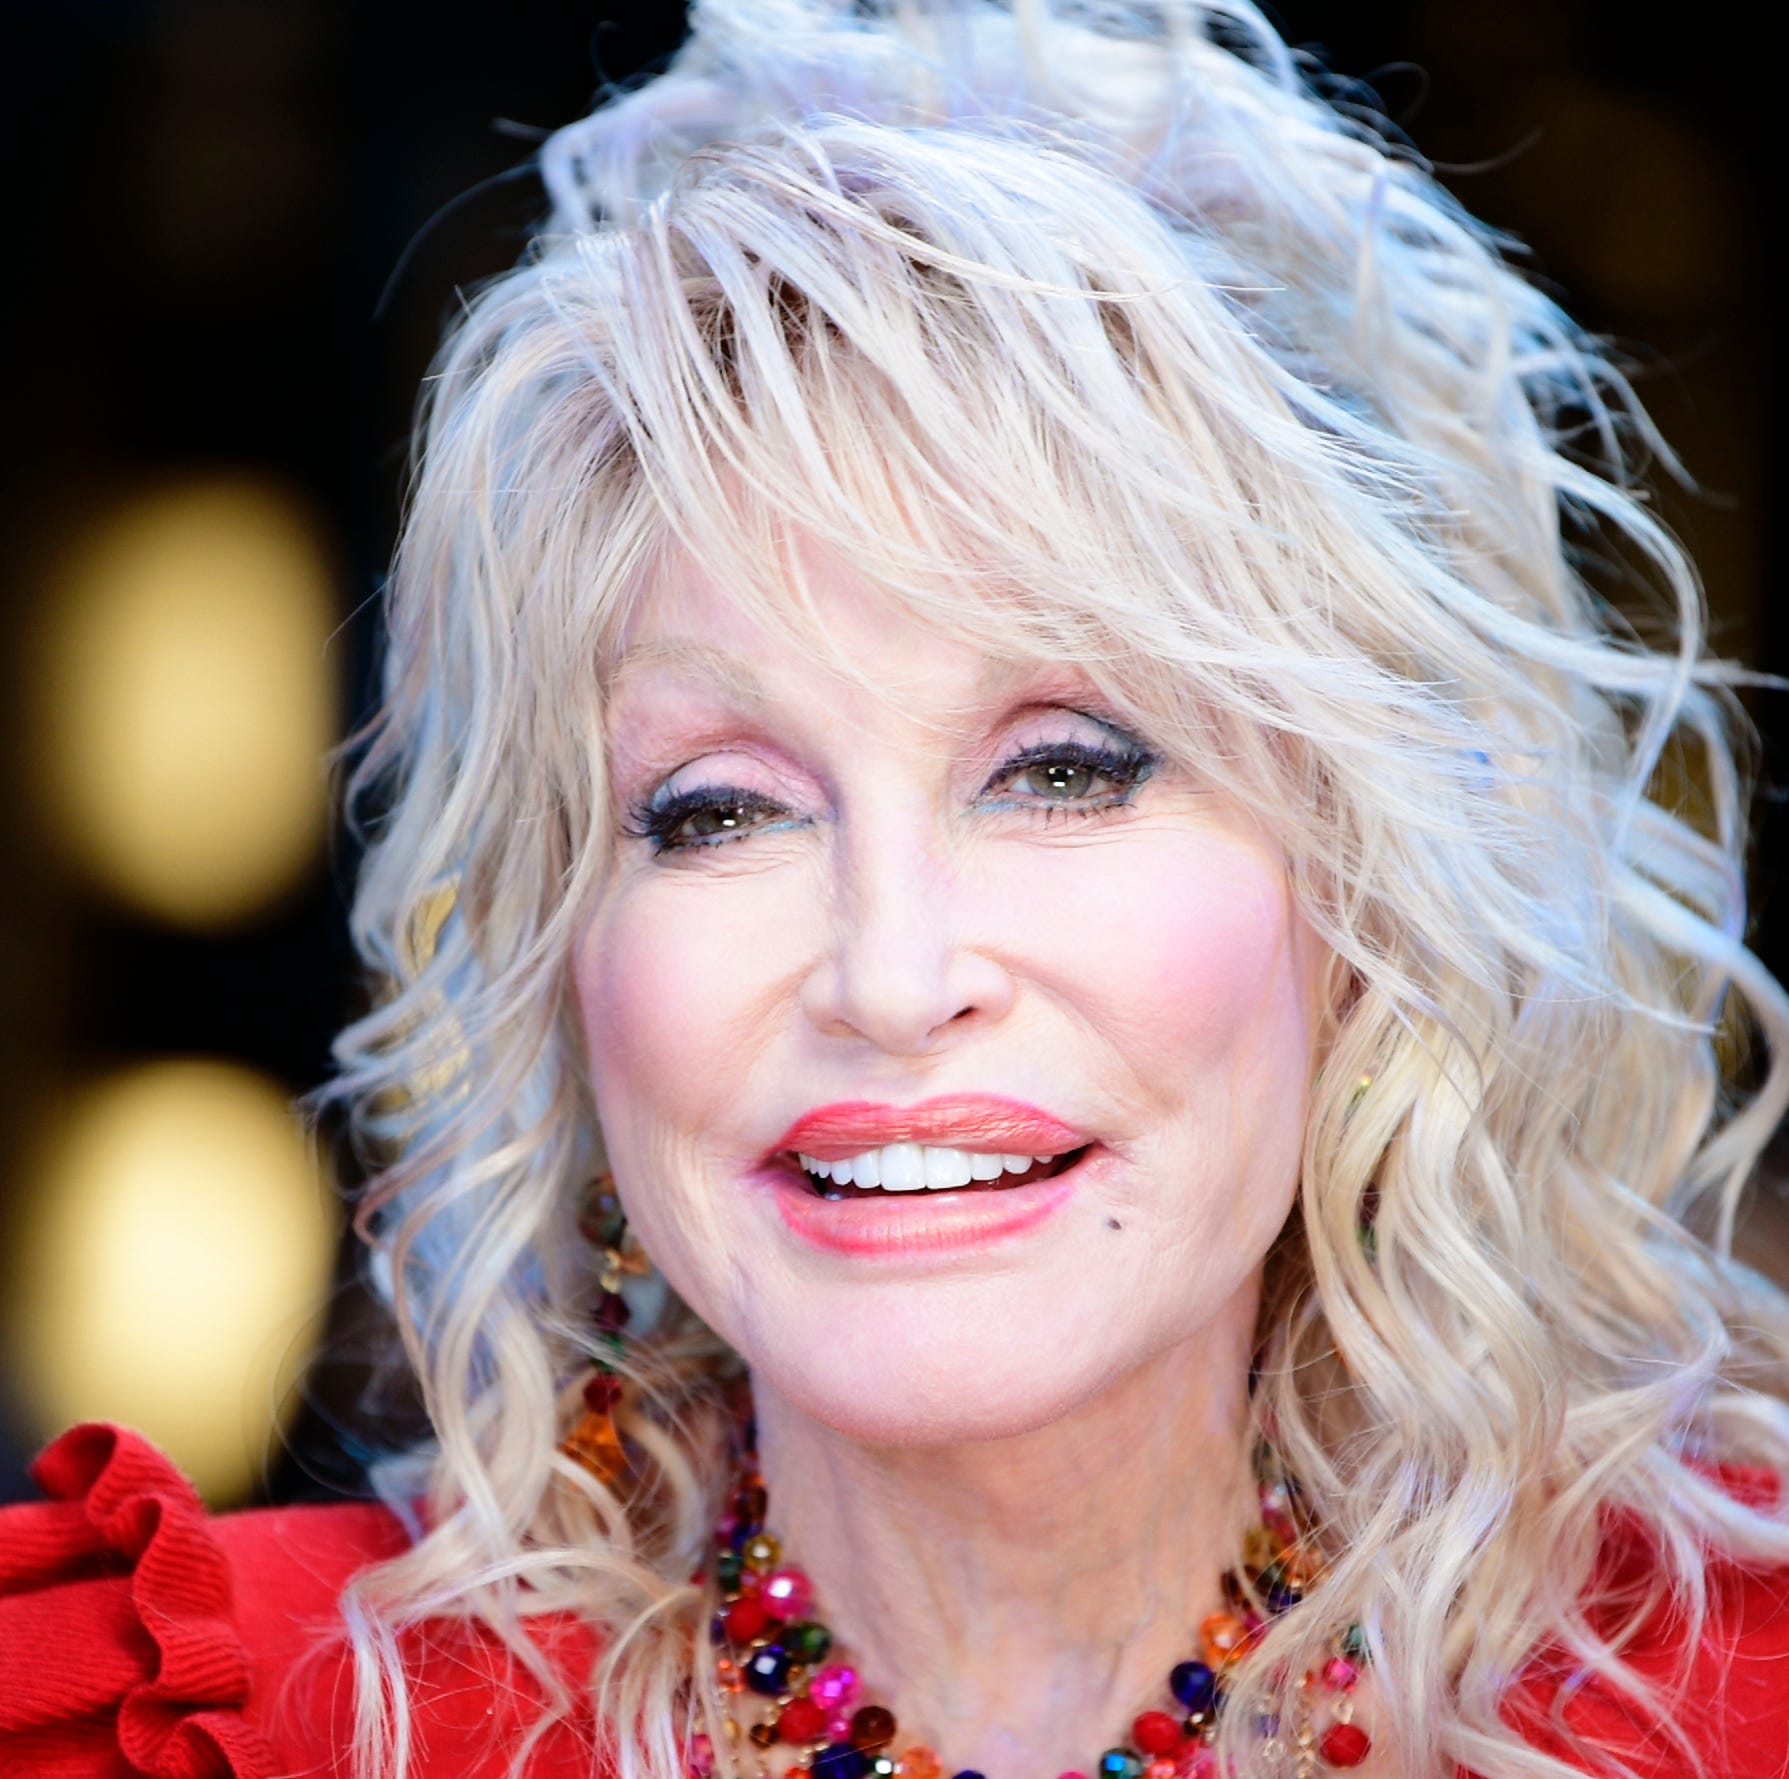 Why Dolly Parton and the Dollywood Foundation received an award from the FBI